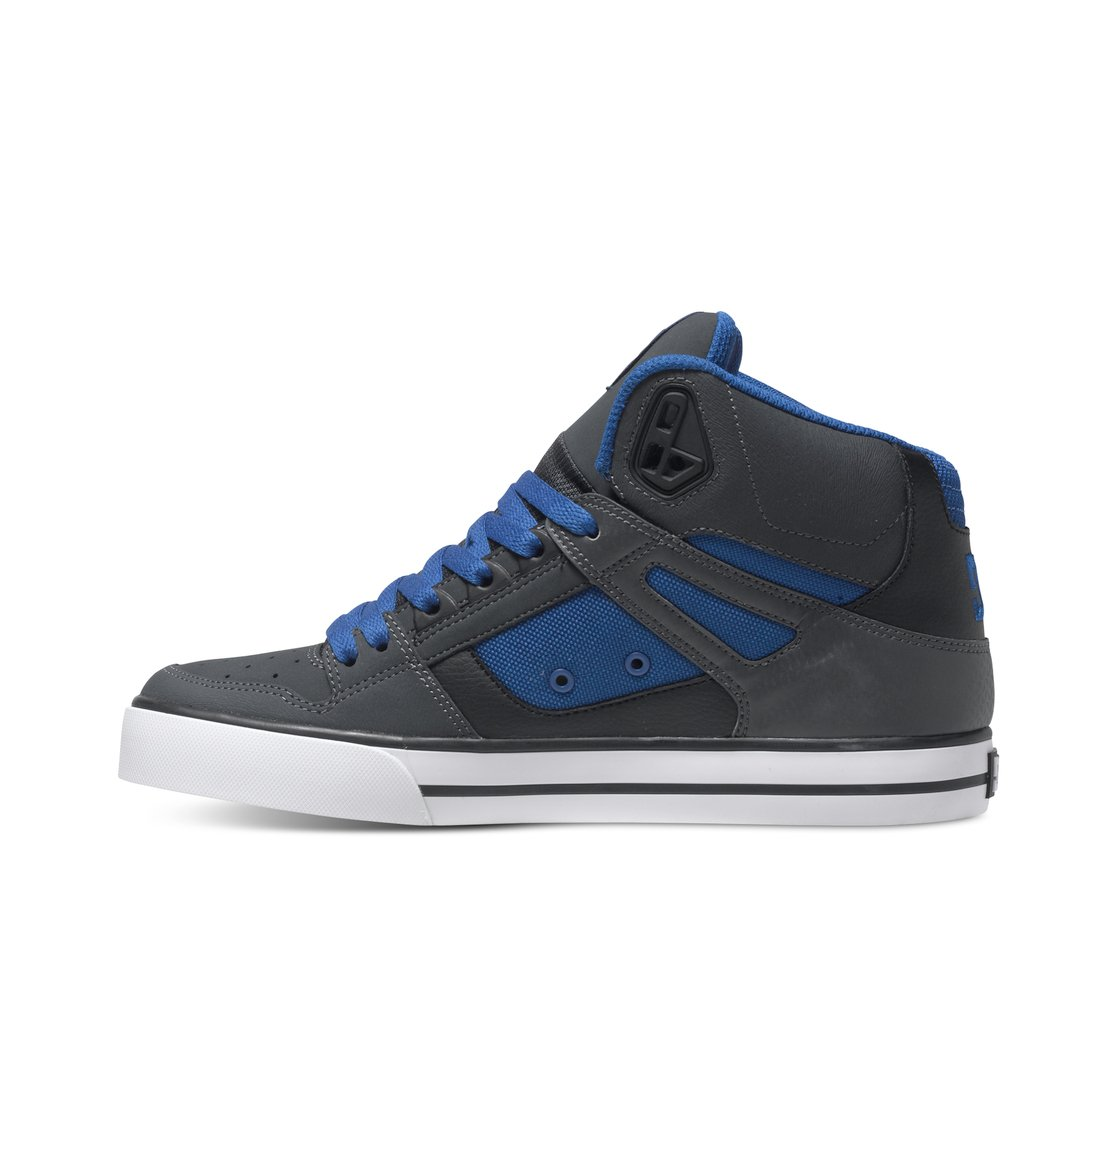 dc shoes spartan high wc chaussures montantes pour homme. Black Bedroom Furniture Sets. Home Design Ideas